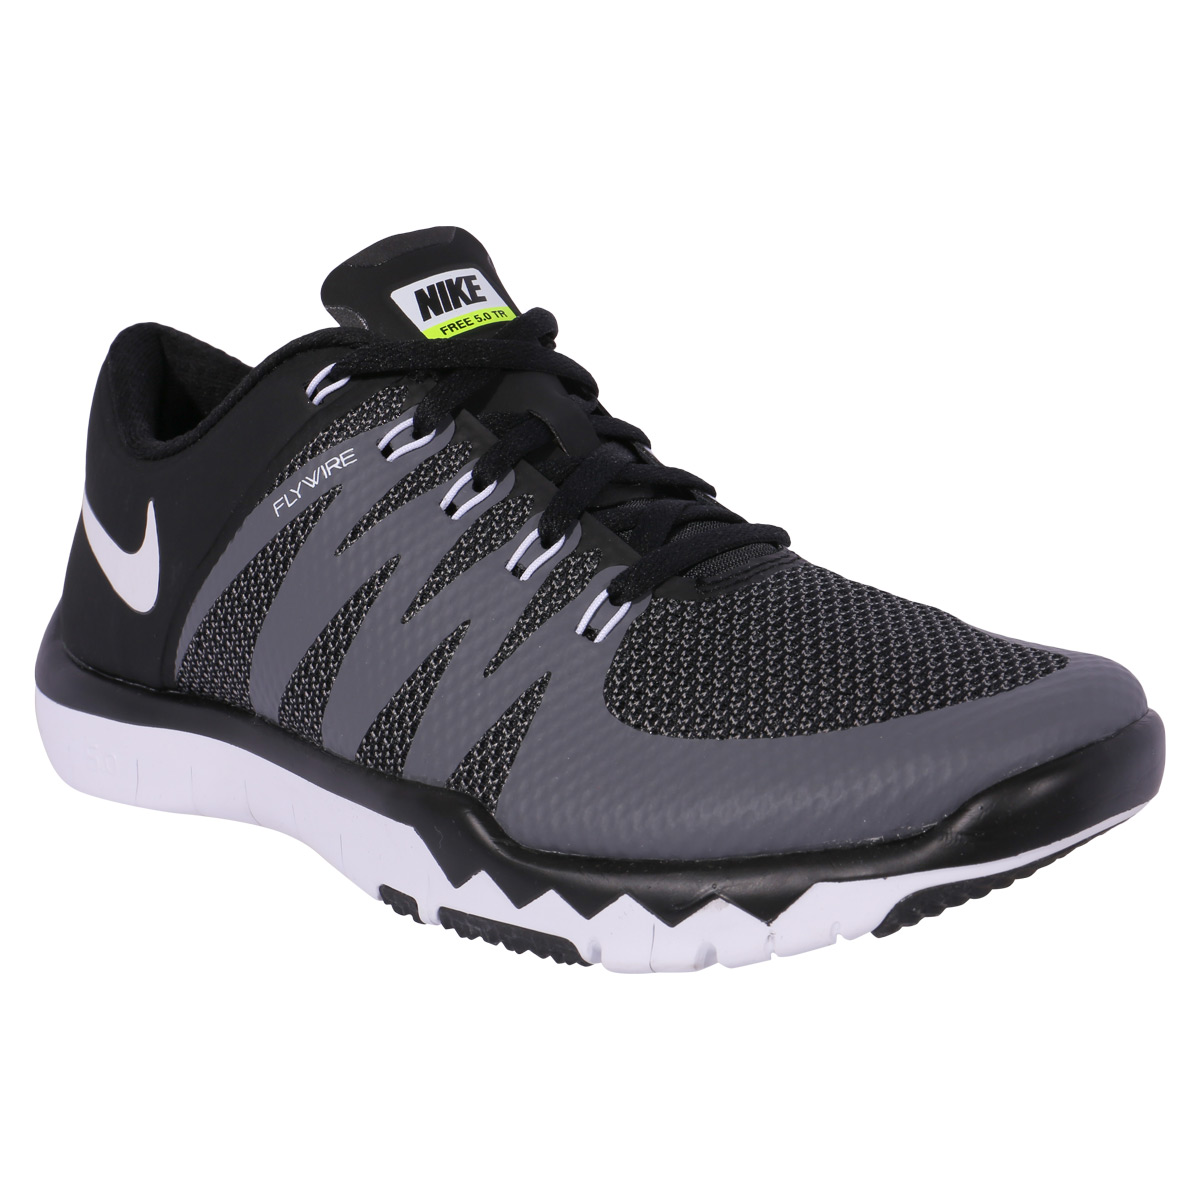 Nike Shoes Black And Gray